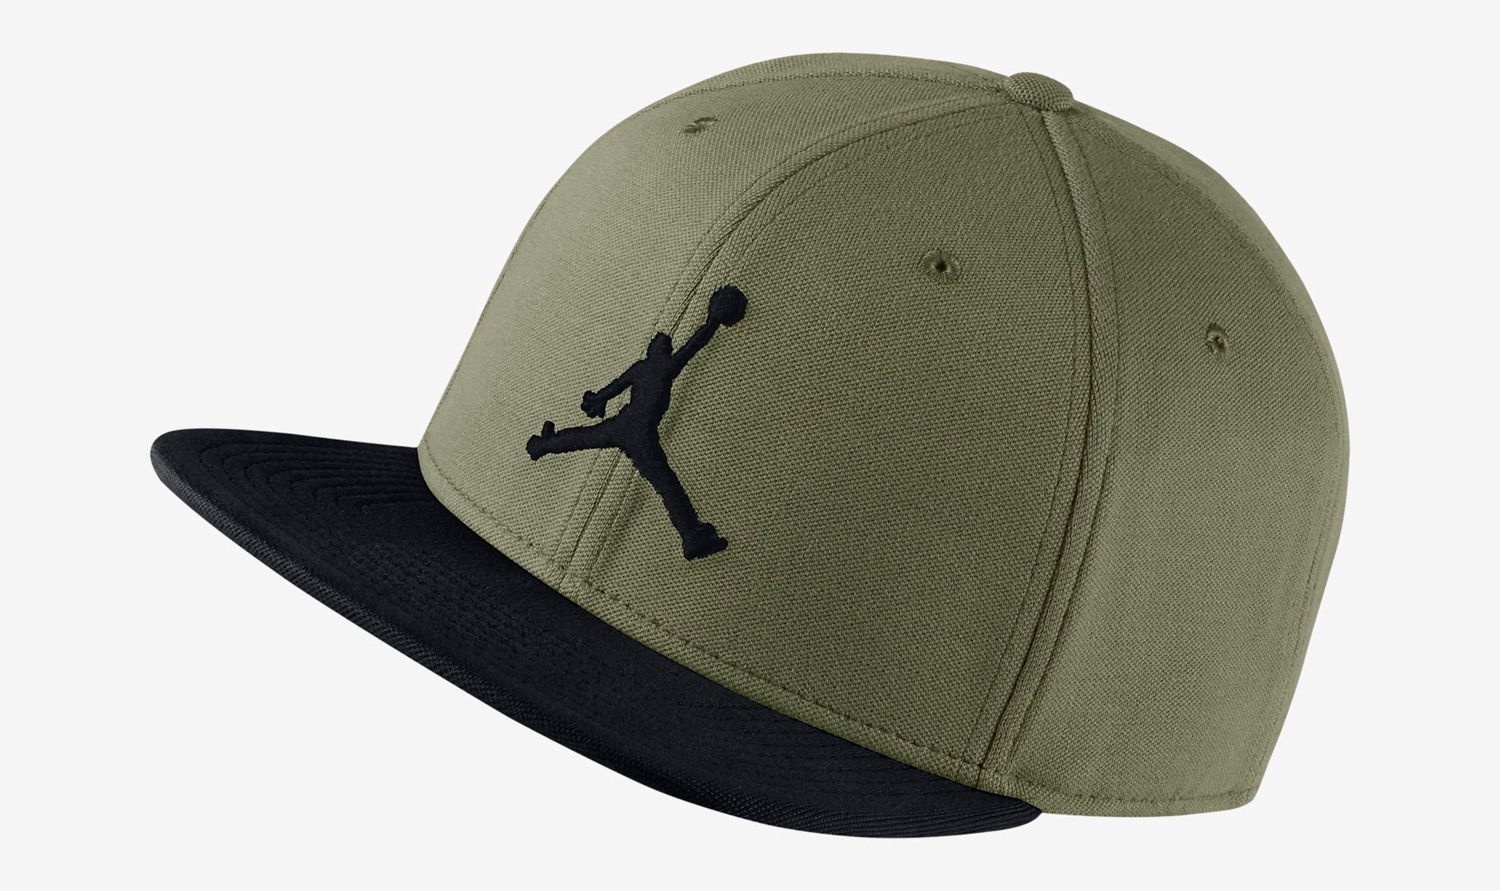 jordan-12-chris-paul-olive-snapback-hat